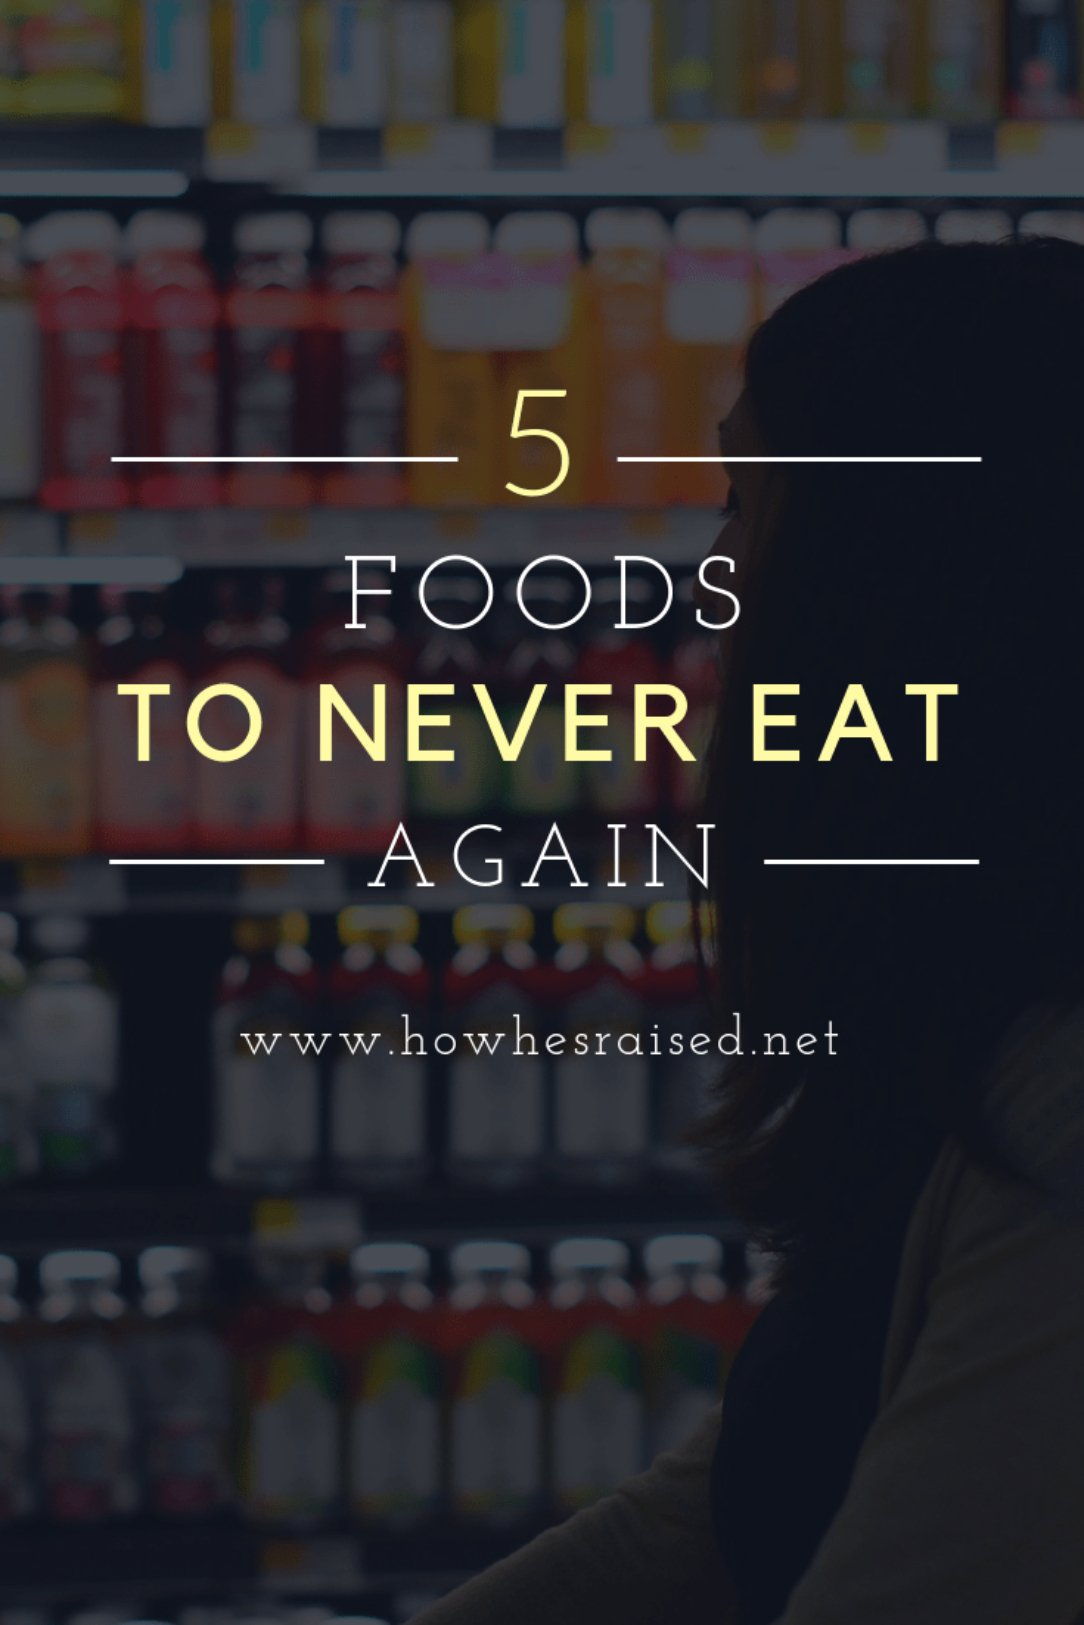 5 Foods to Never Eat Again